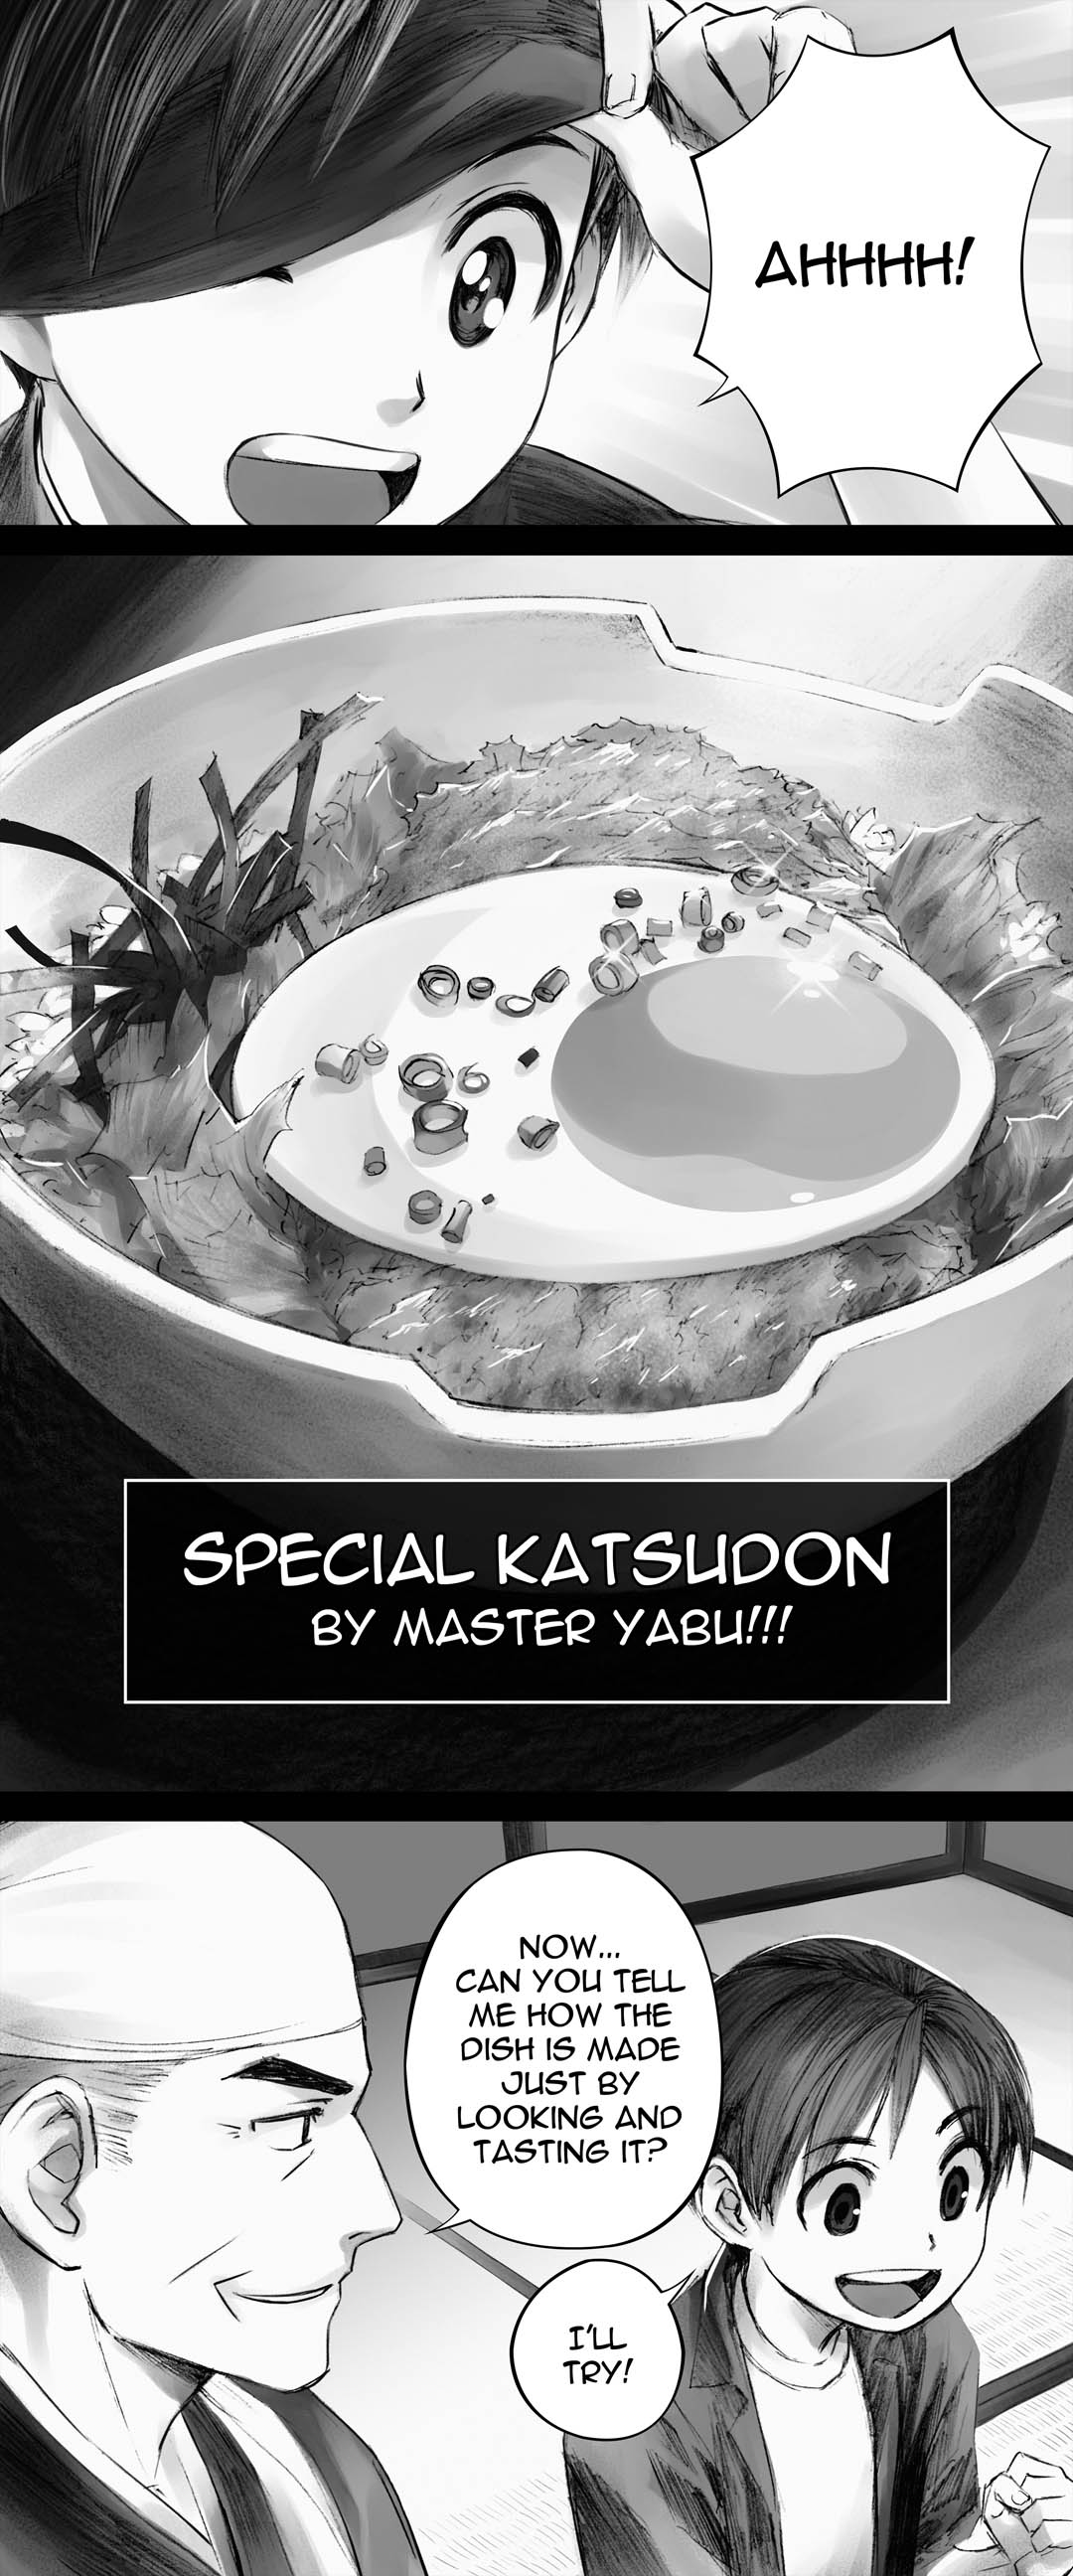 Yabu 2013 - Special Katsudon - Panel 3 Preview.jpg